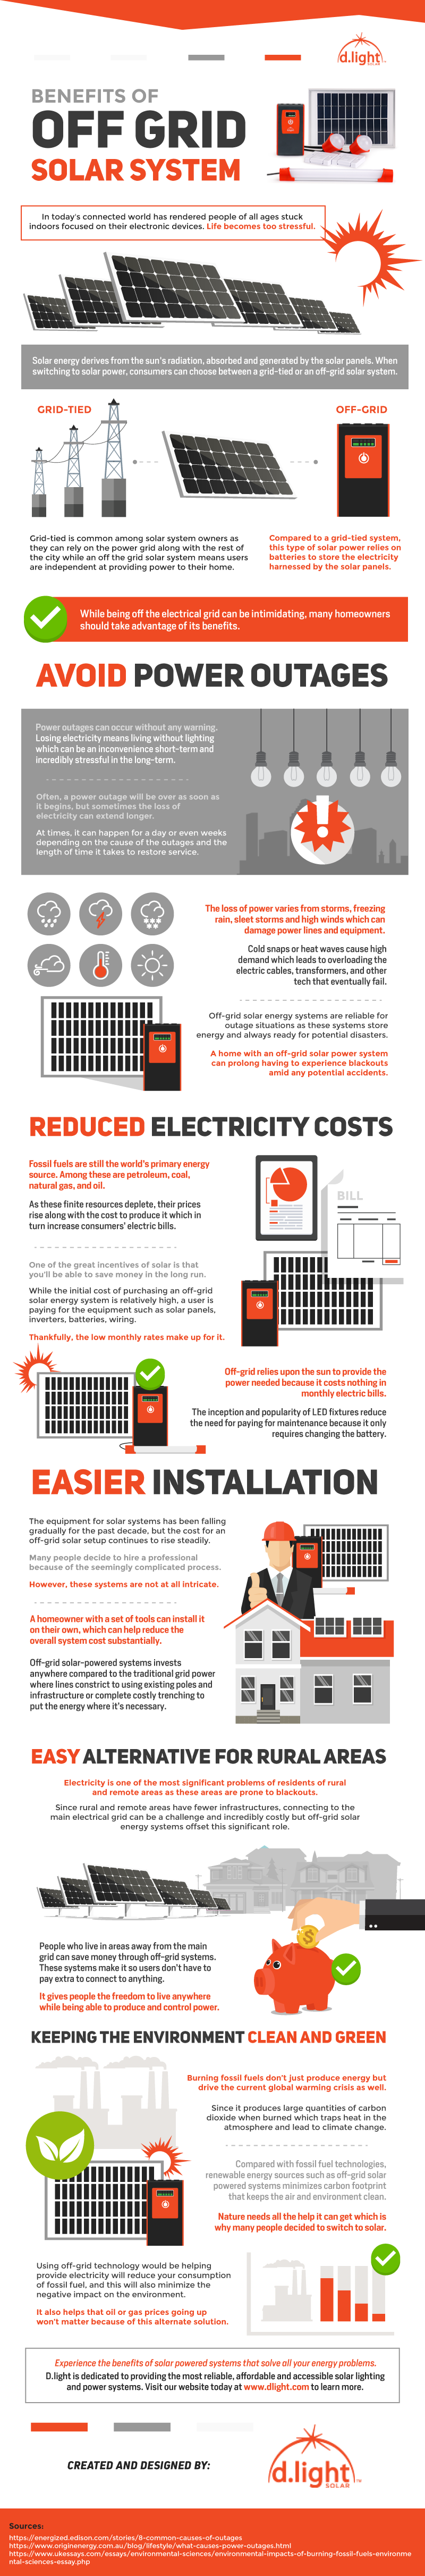 Benefits Of Off Grid Solar System Infographic D Light